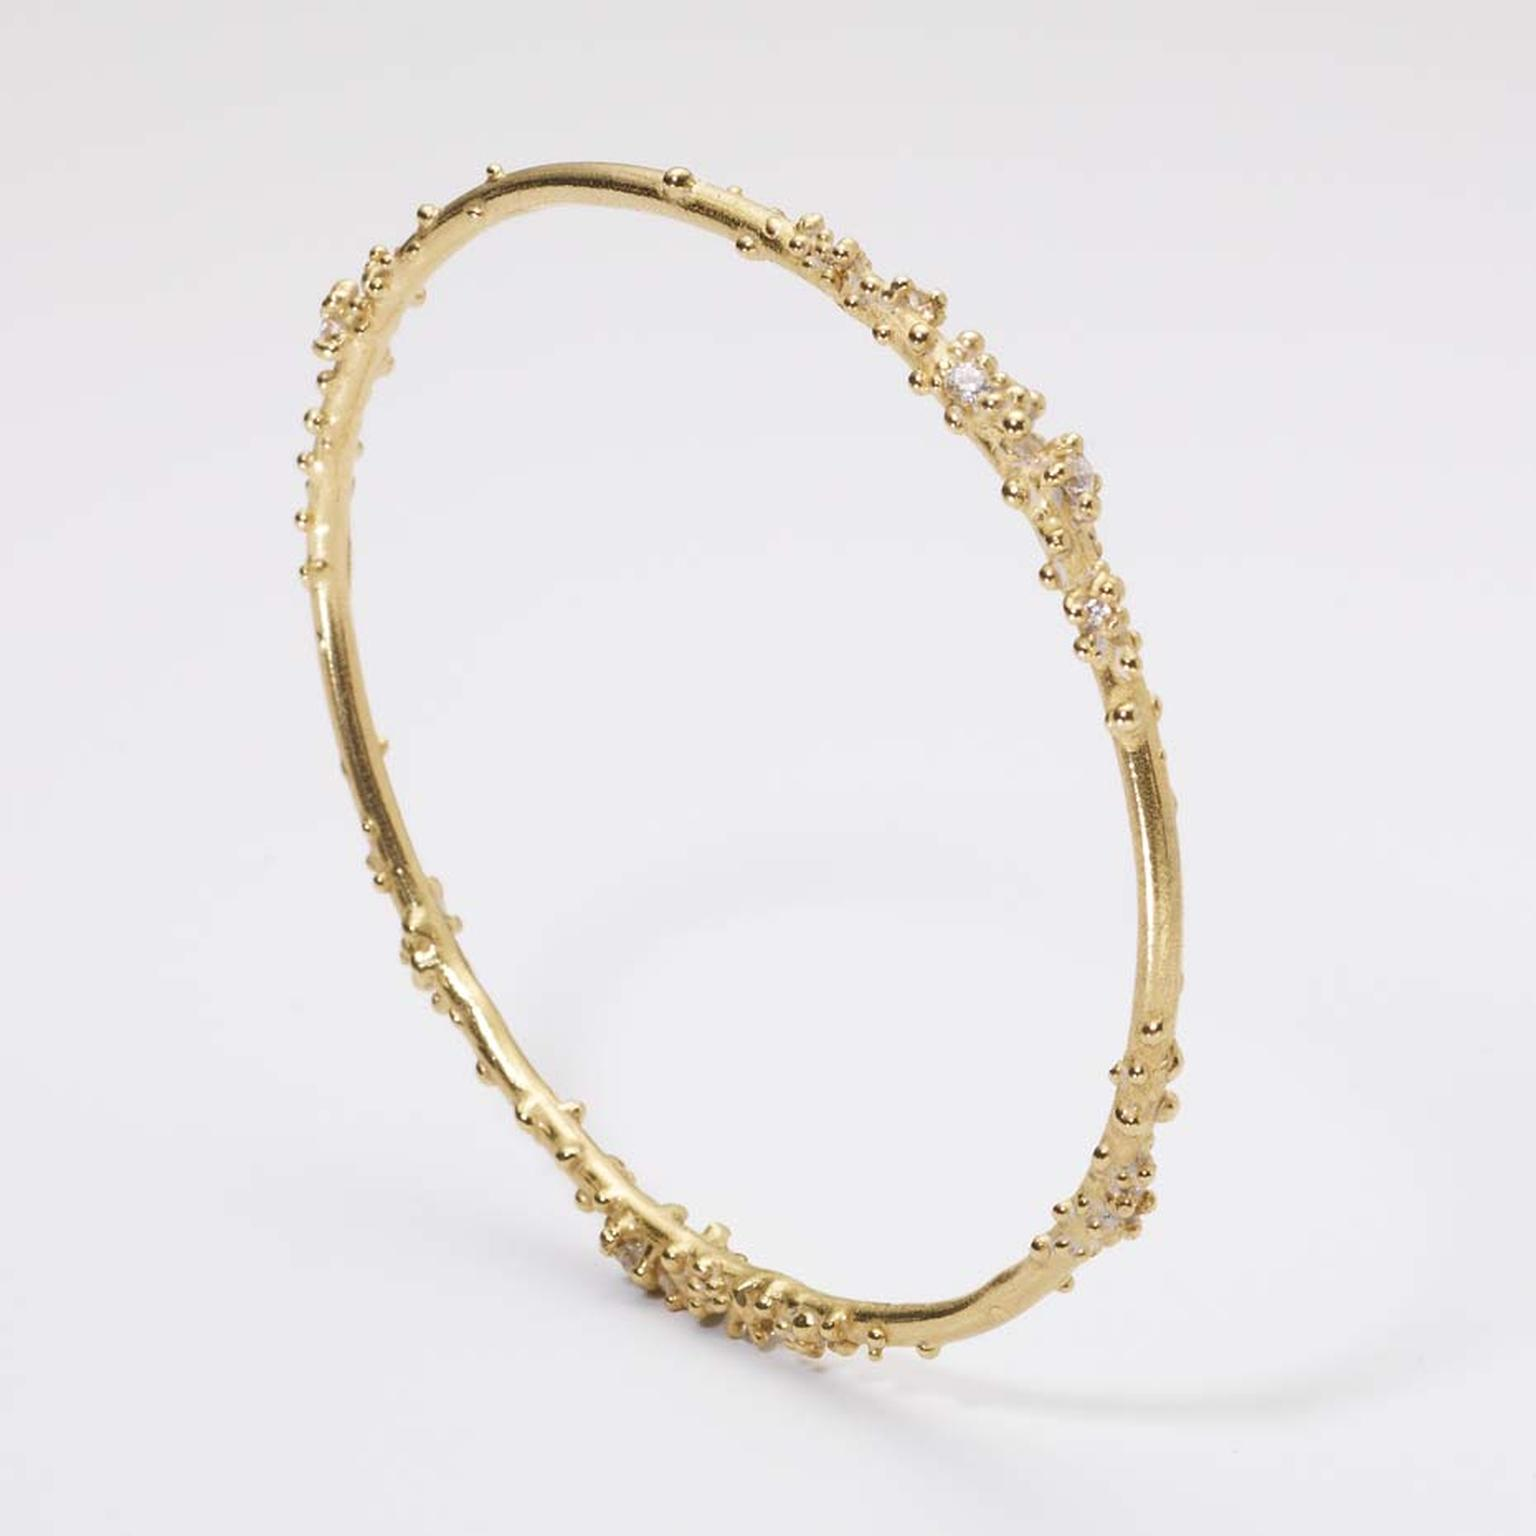 Ruth Tomlinson encrusted gold bangle